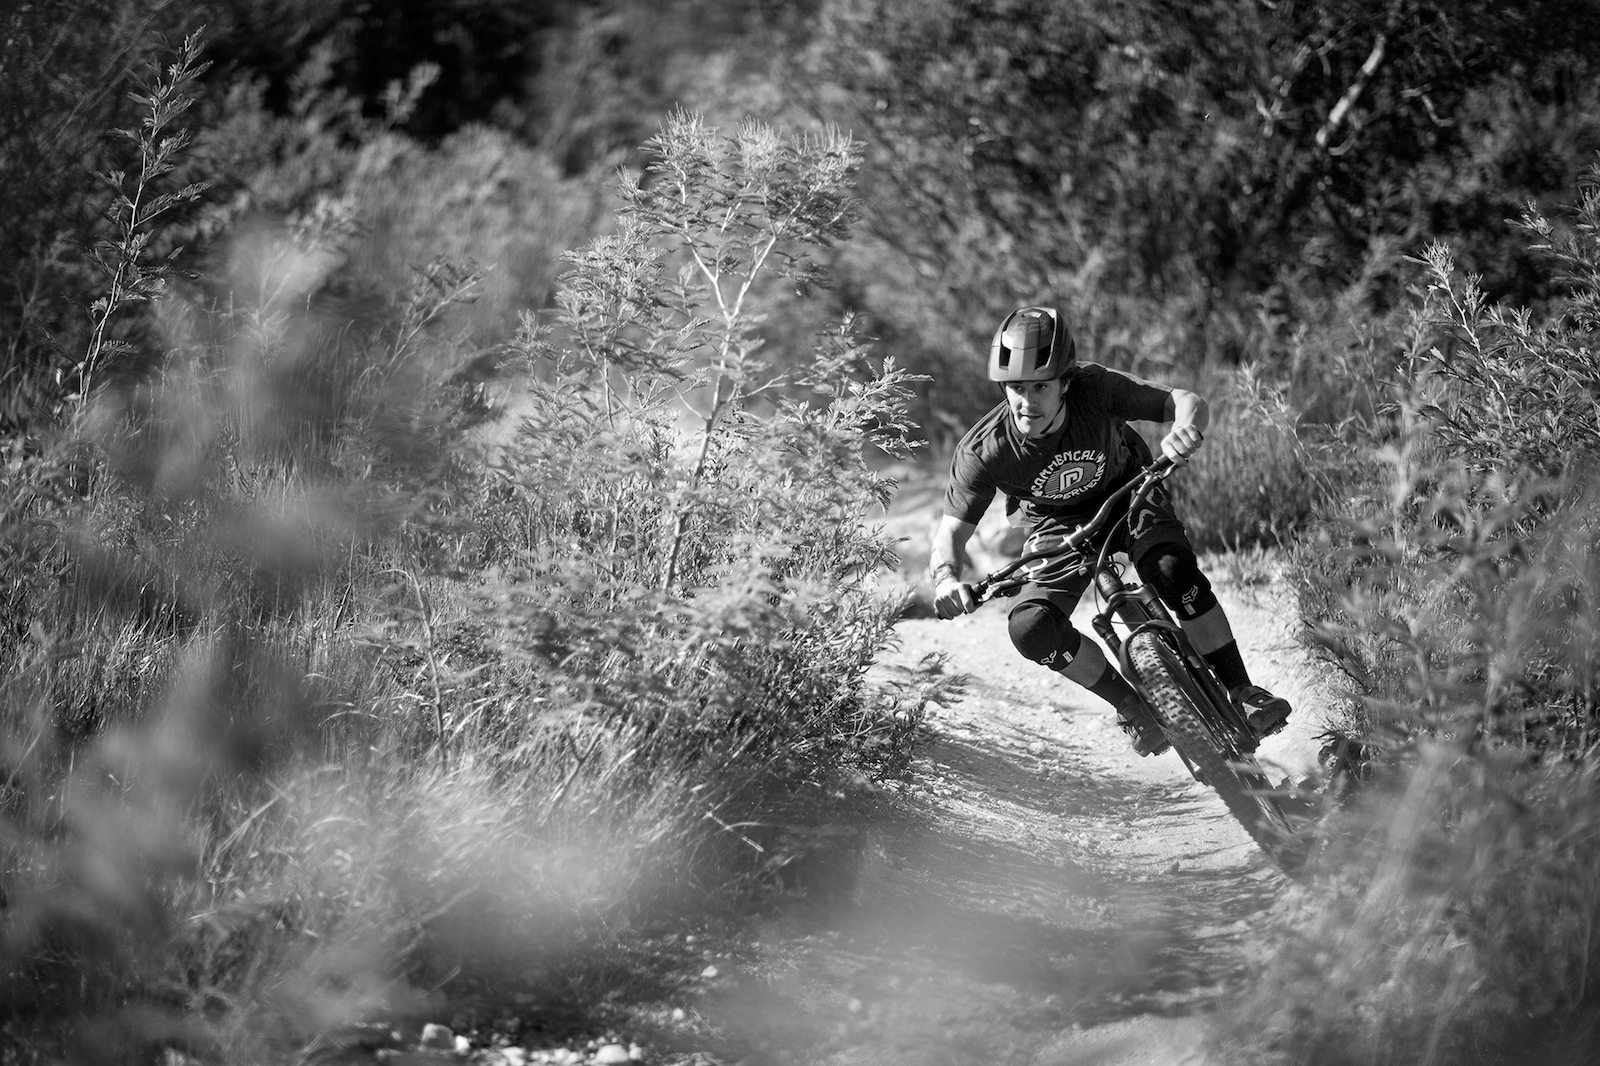 Produit: COMMENCAL META AM Pilote : Gaetan Vigé Photo : Jb Liautard Lieu : Mandelieu / FRANCE